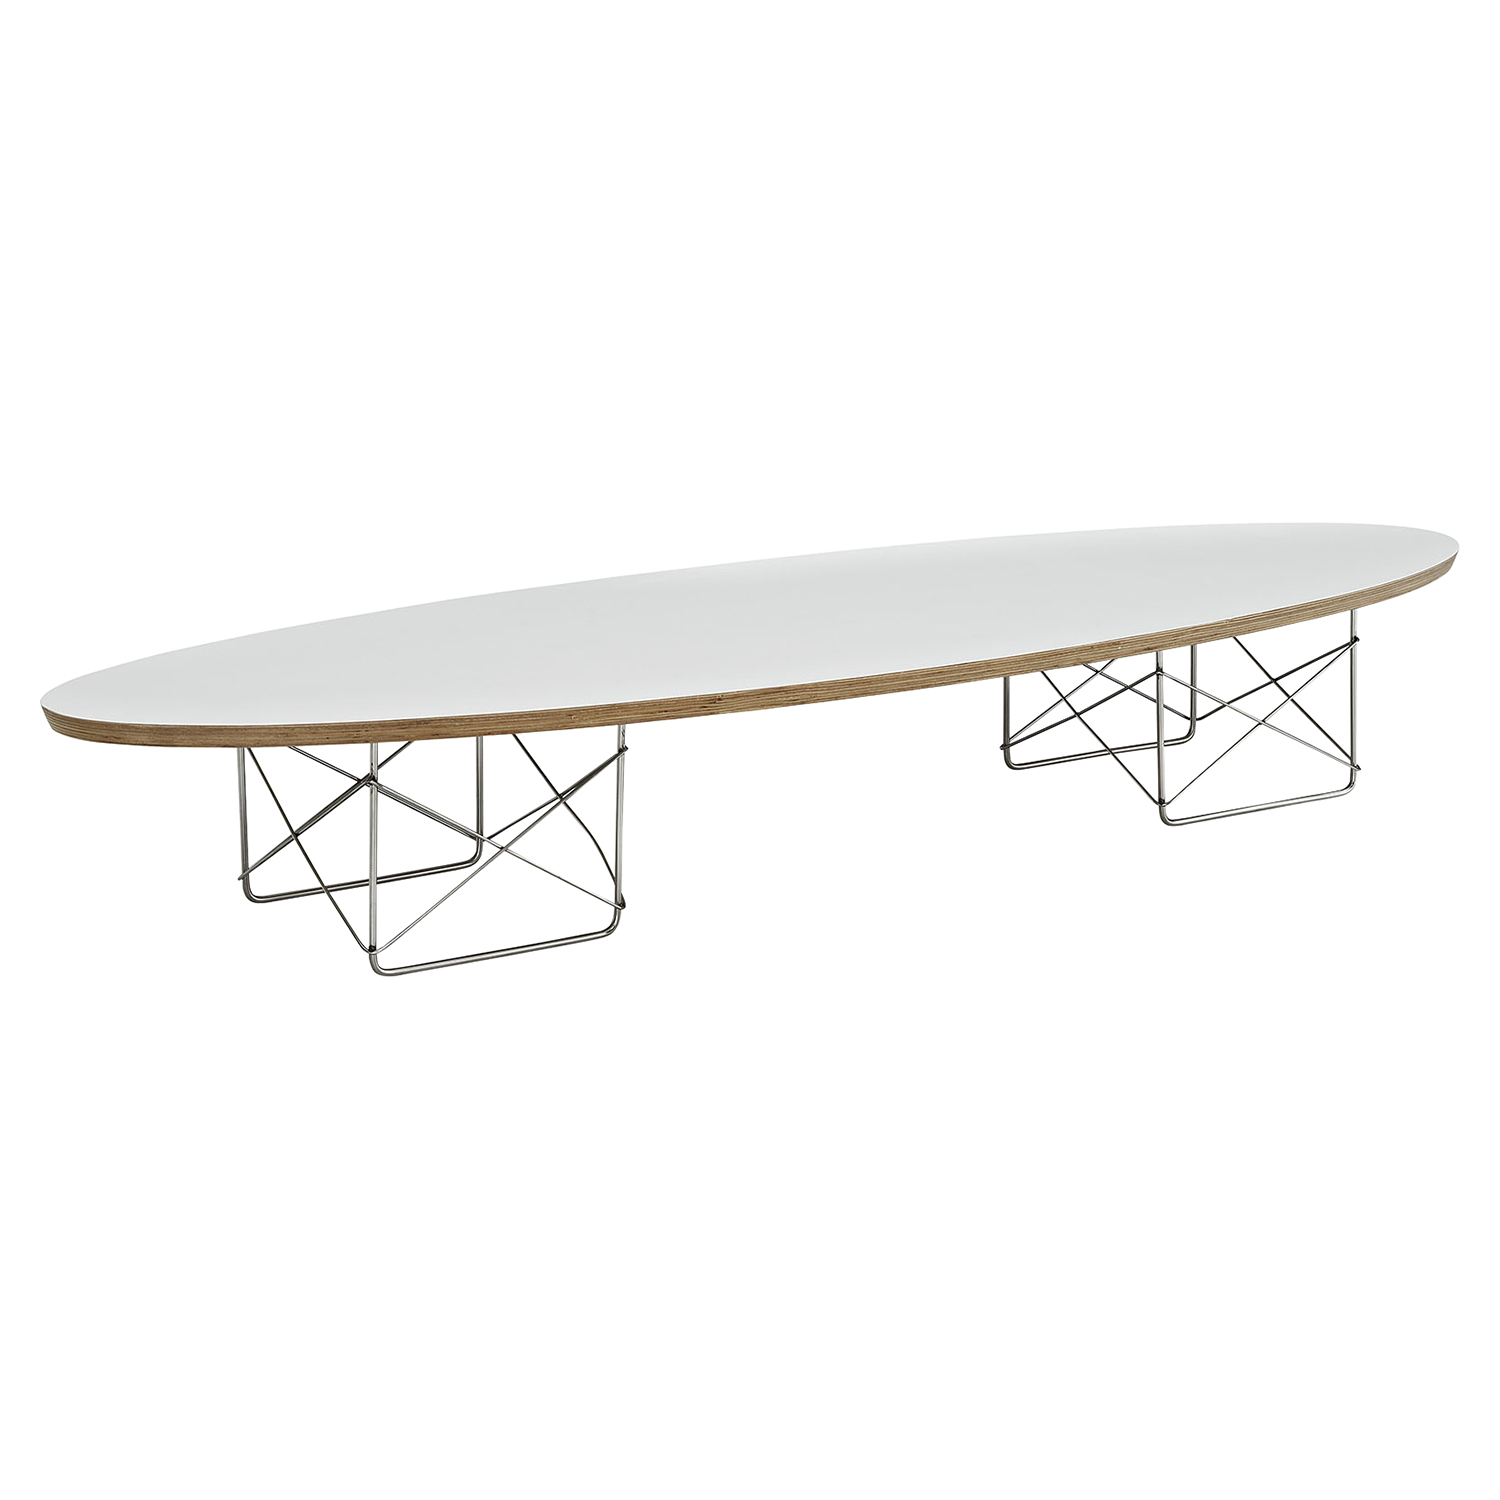 Surfboard Oval Coffee Table - White